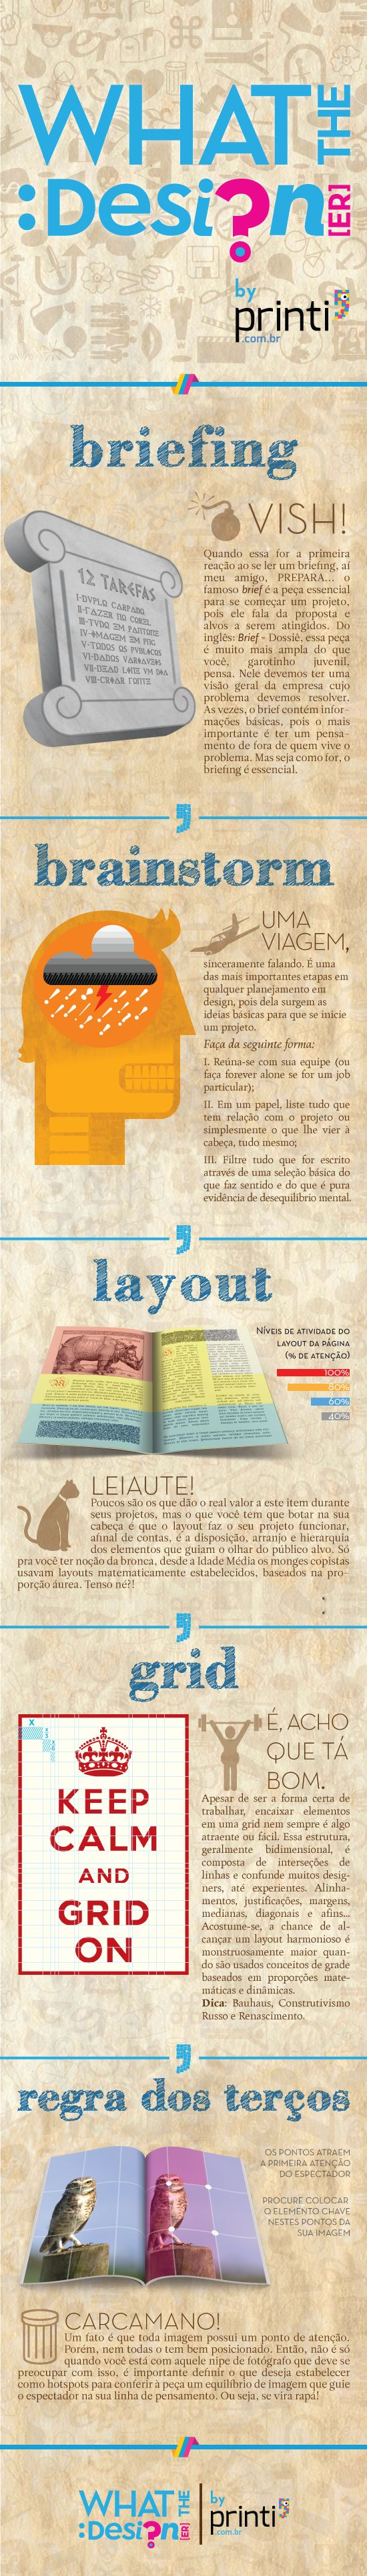 Infográfico What The Design O Projeto